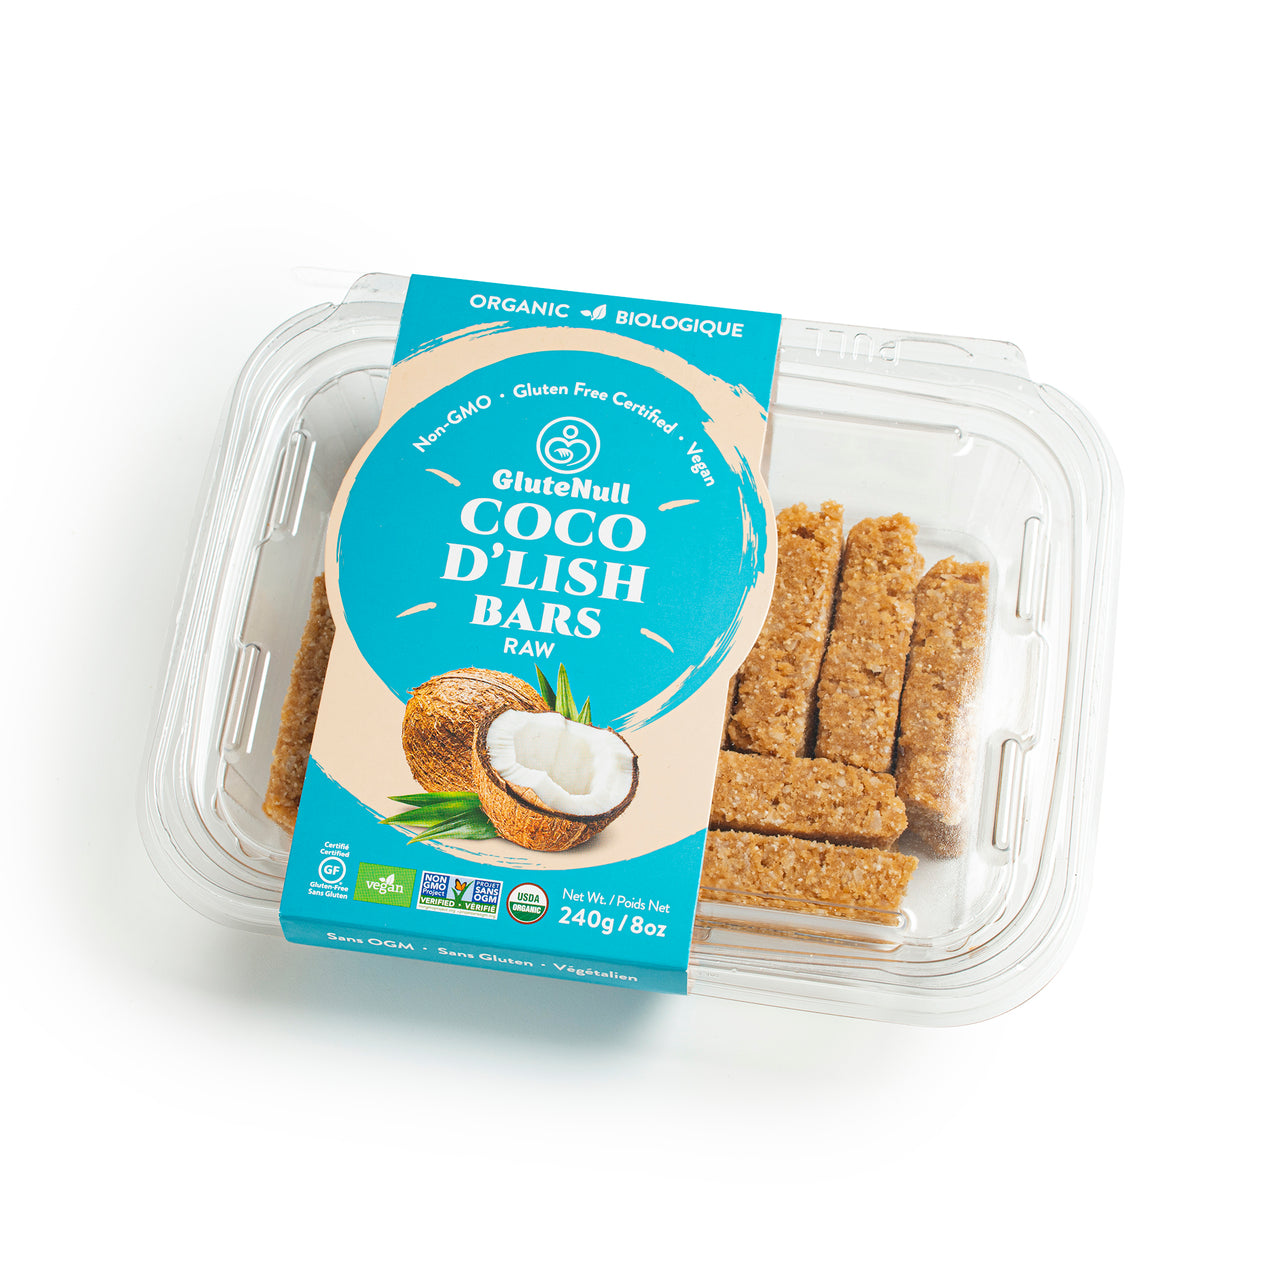 GluteNull Bakery Organic Raw Coco D'Lish Bar, Feb. Promo - 20% Off